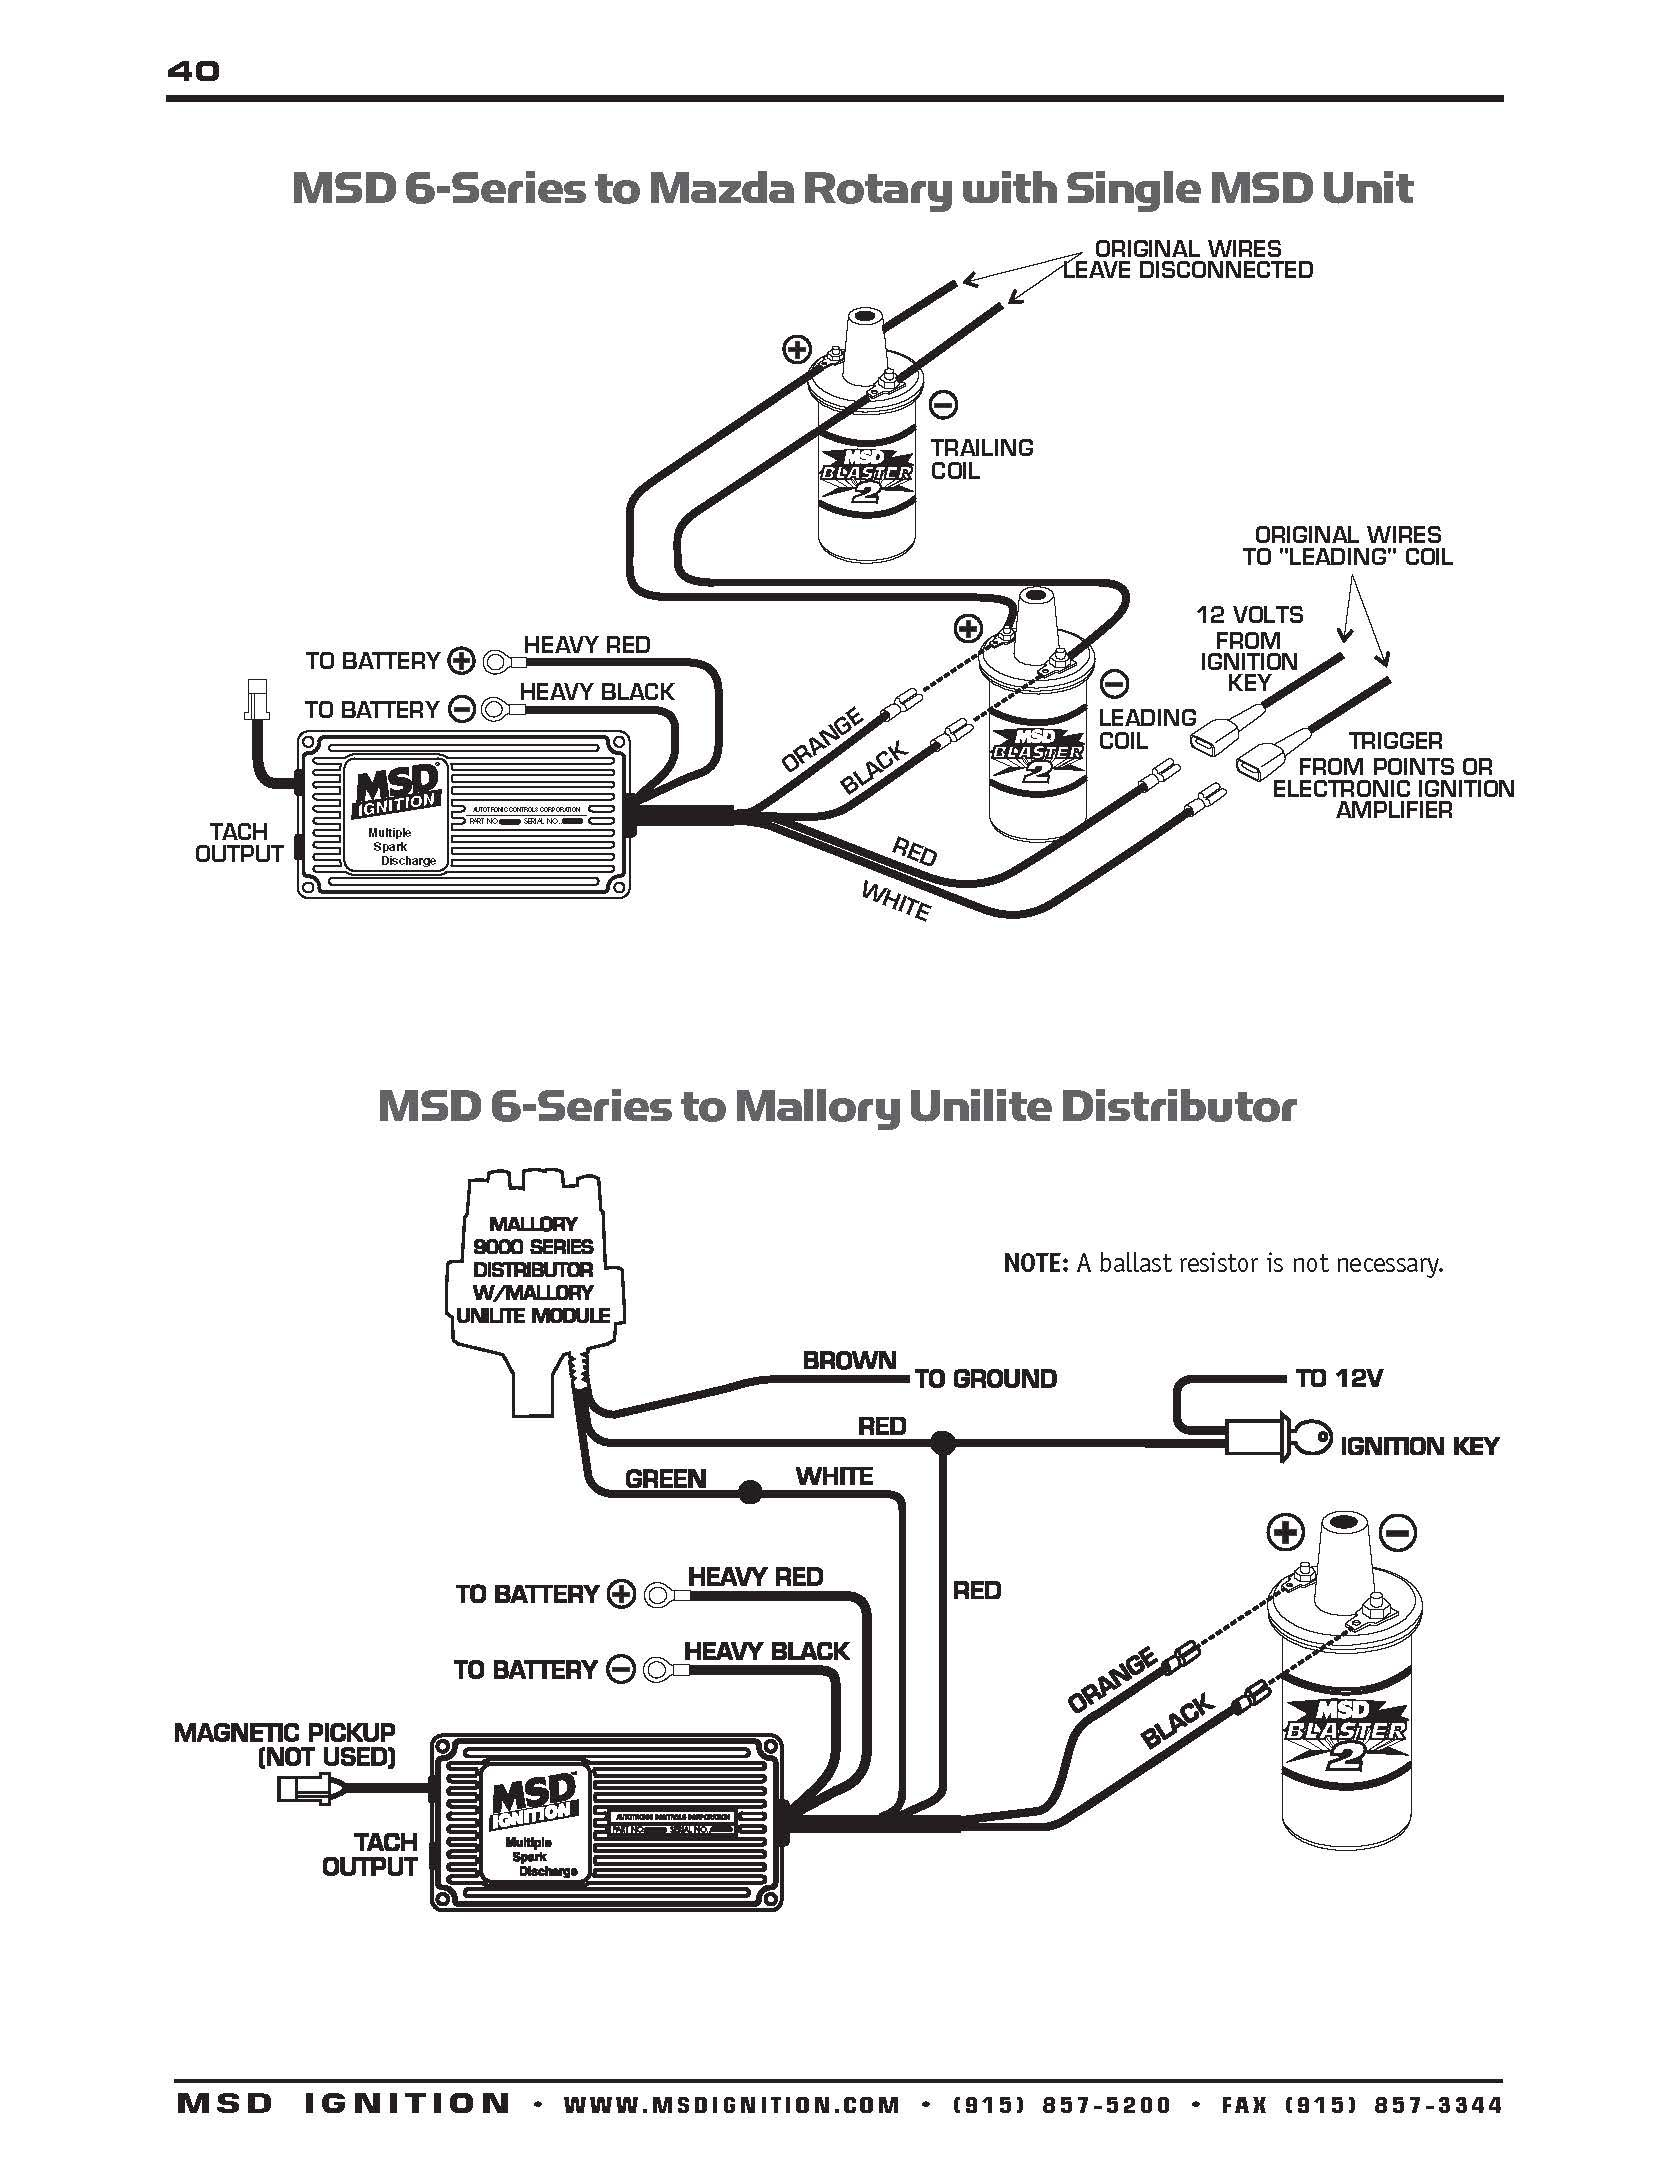 Mallory Unilite Wiring Diagram Sbc Diagrams Schematics Inside ... on mallory ignition module, mallory ignition wiring diagram chevy, mallory ct pro ignition system, mallory ignition distributor, mallory ignition wiring diagram 85, mallory ignition wiring diagram 75, ford 8n ignition system diagrams, mallory 8548201 distributor wiring diagram, mallory ignition troubleshooting, mallory marine ignition wiring, mallory 6100m ignition, mallory ignition wiring diagram digital motorcycle, mallory magneto ignition wiring diagram,